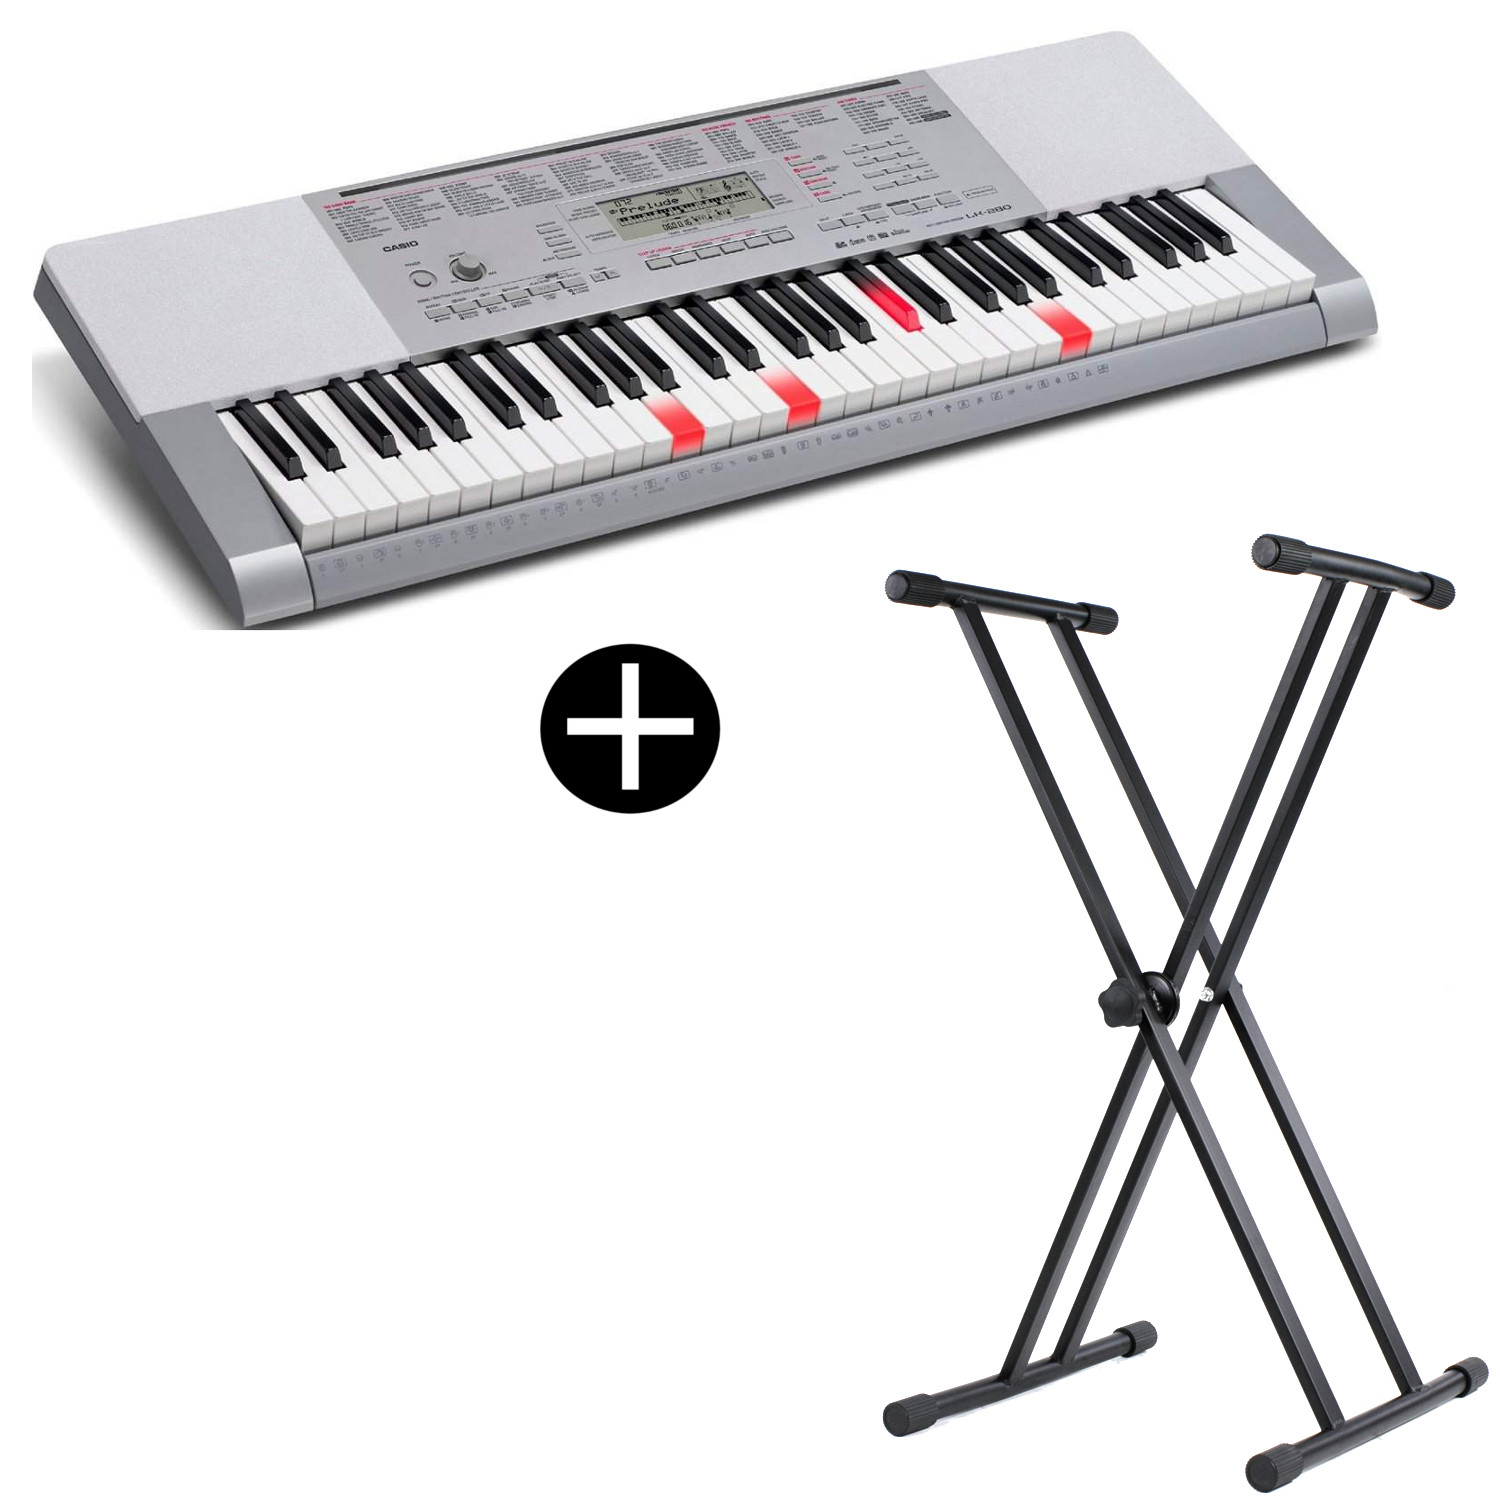 Casio LK 280 keyboard with 61 illuminated keys and stand